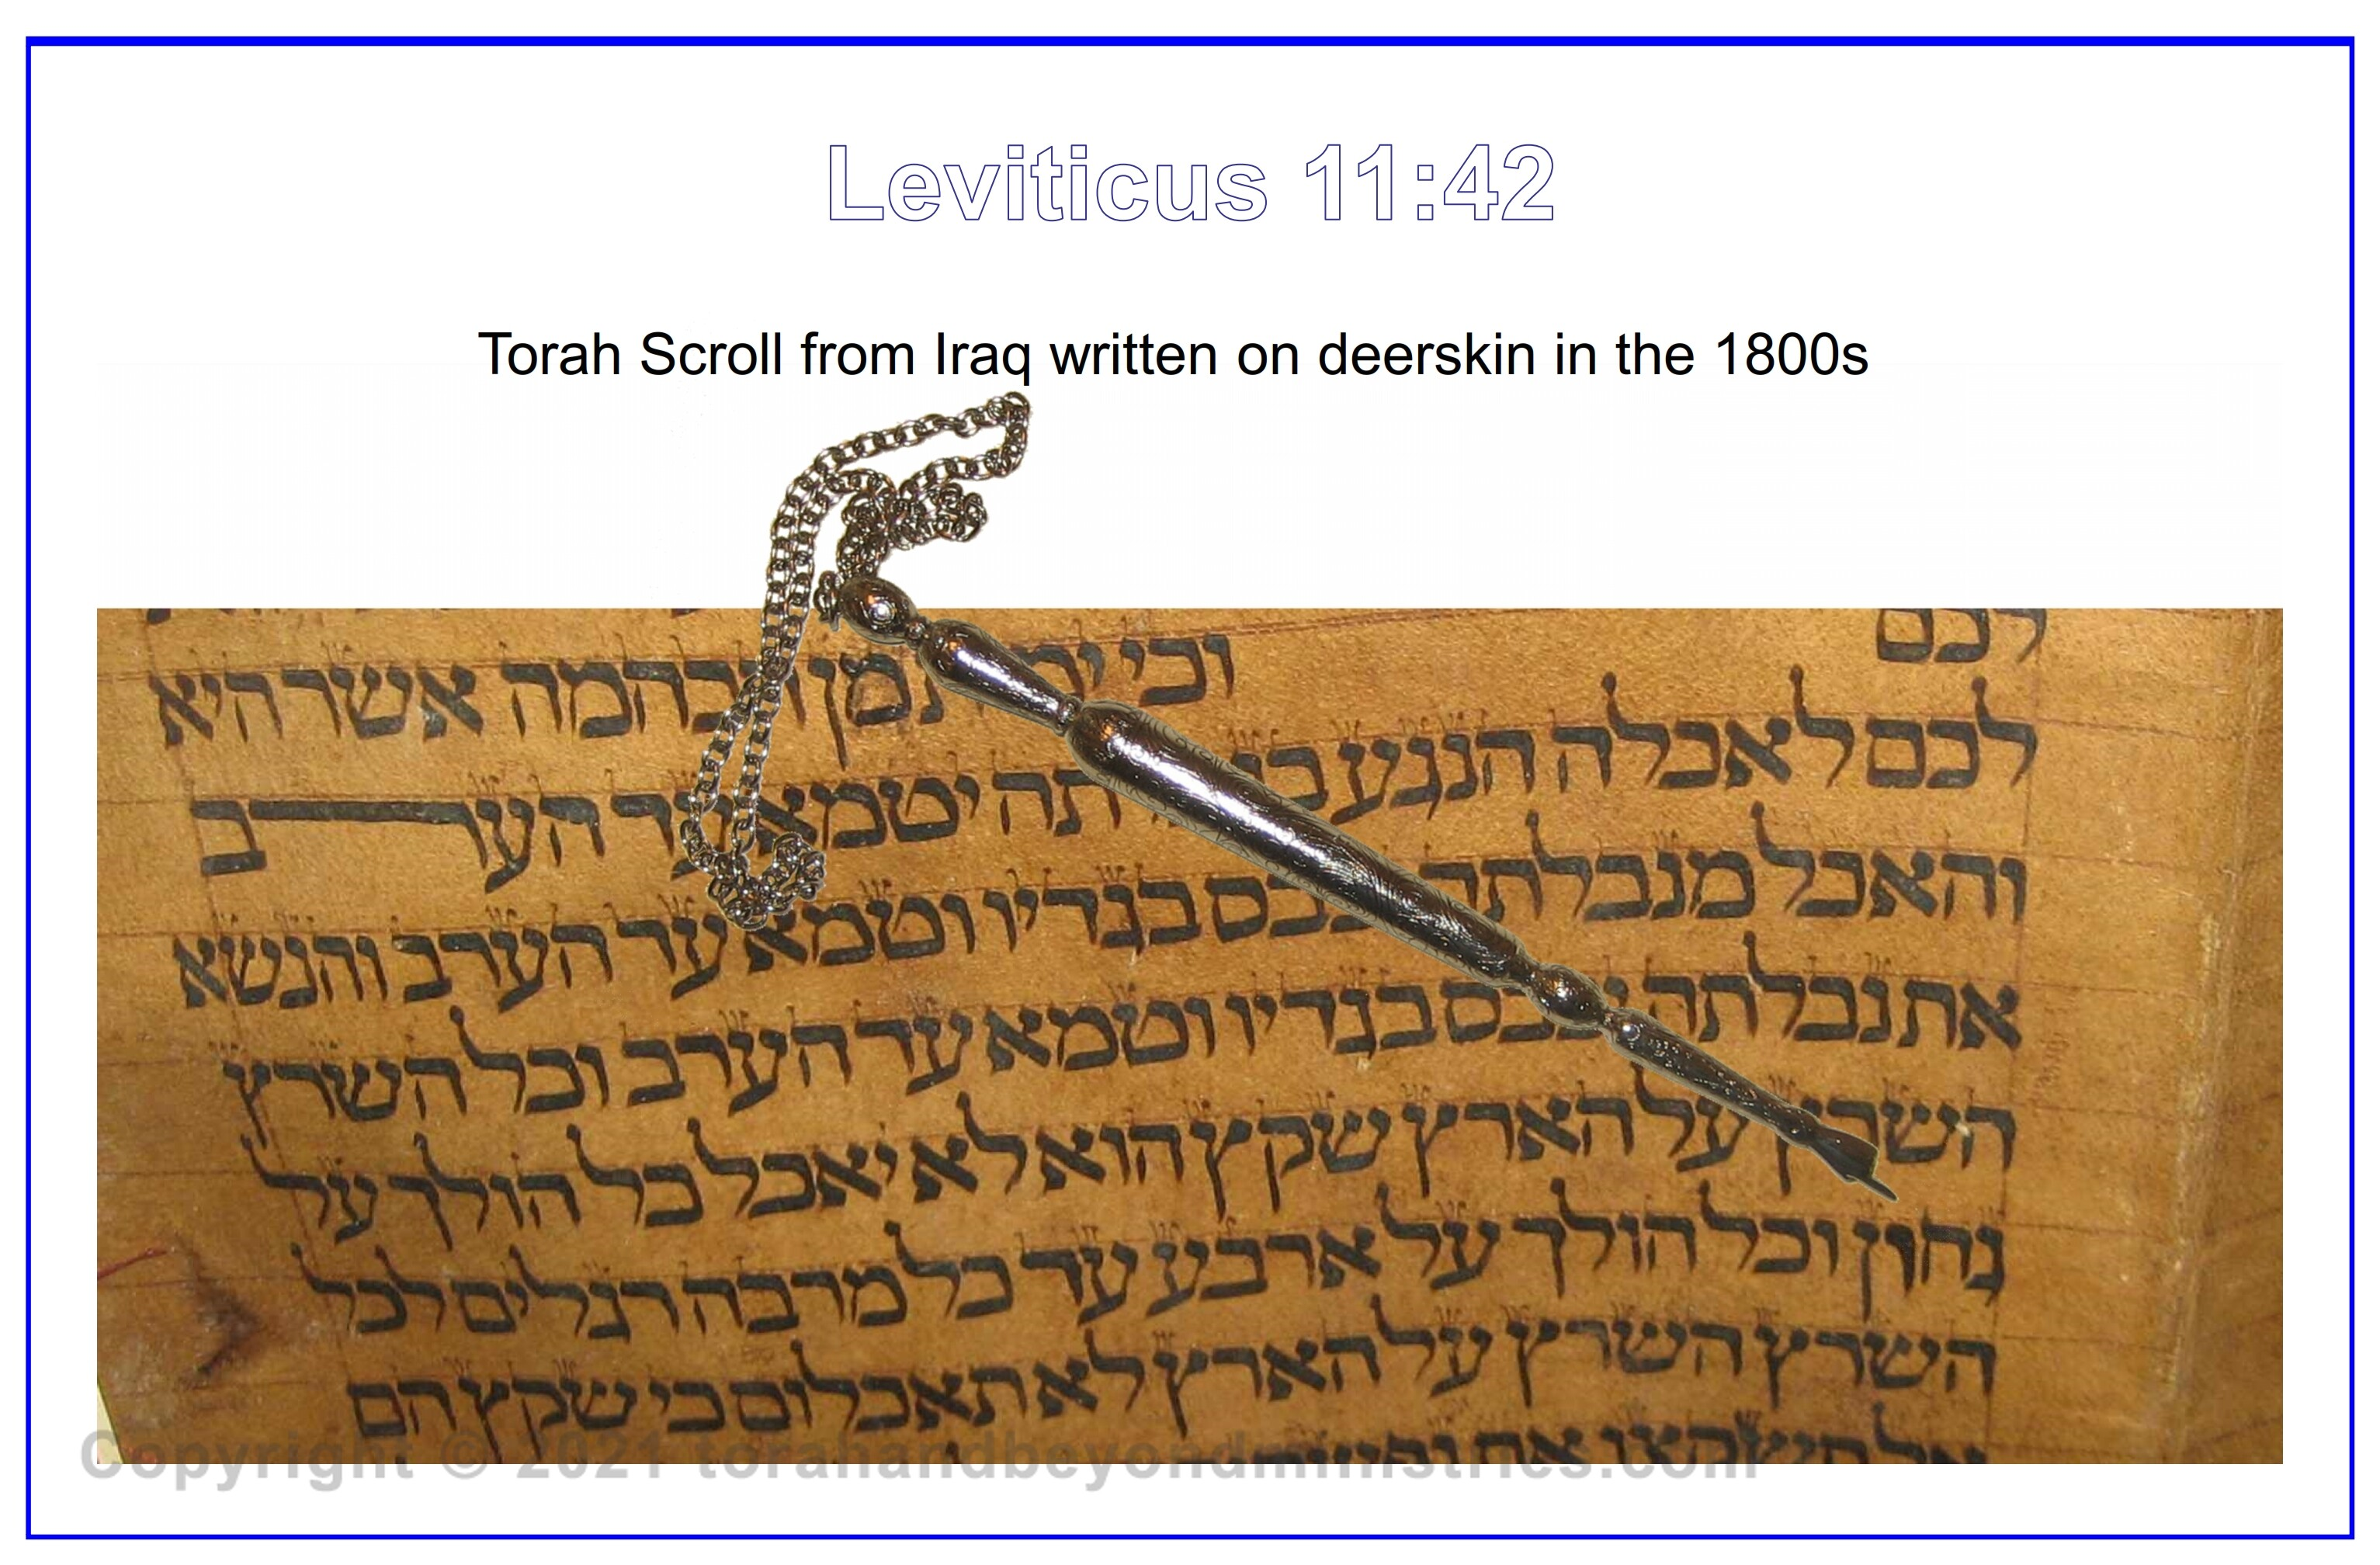 The yad, hand, is pointing to the middle letter of the Torah.